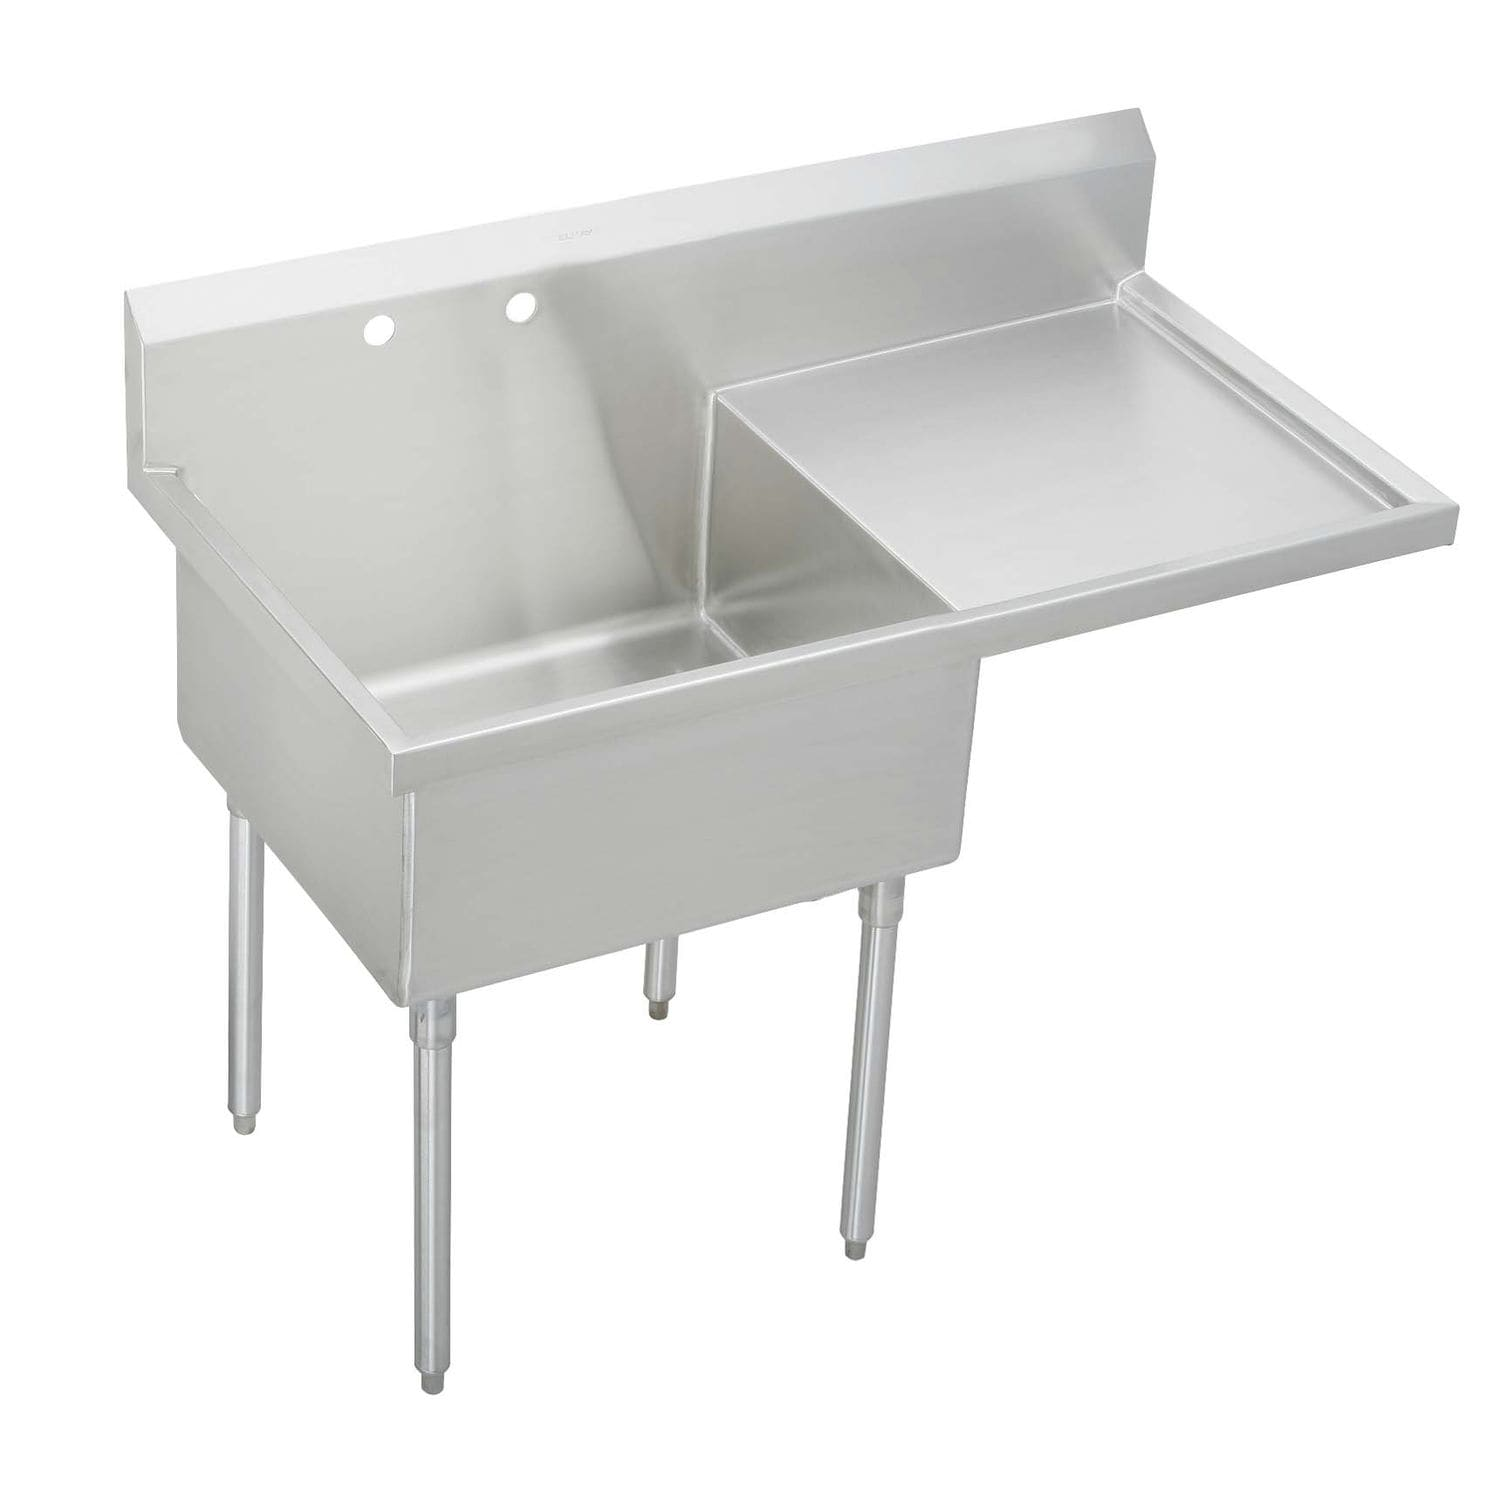 commercial kitchen sink professional supplies cabinet with legs for kitchens wnsf8136r